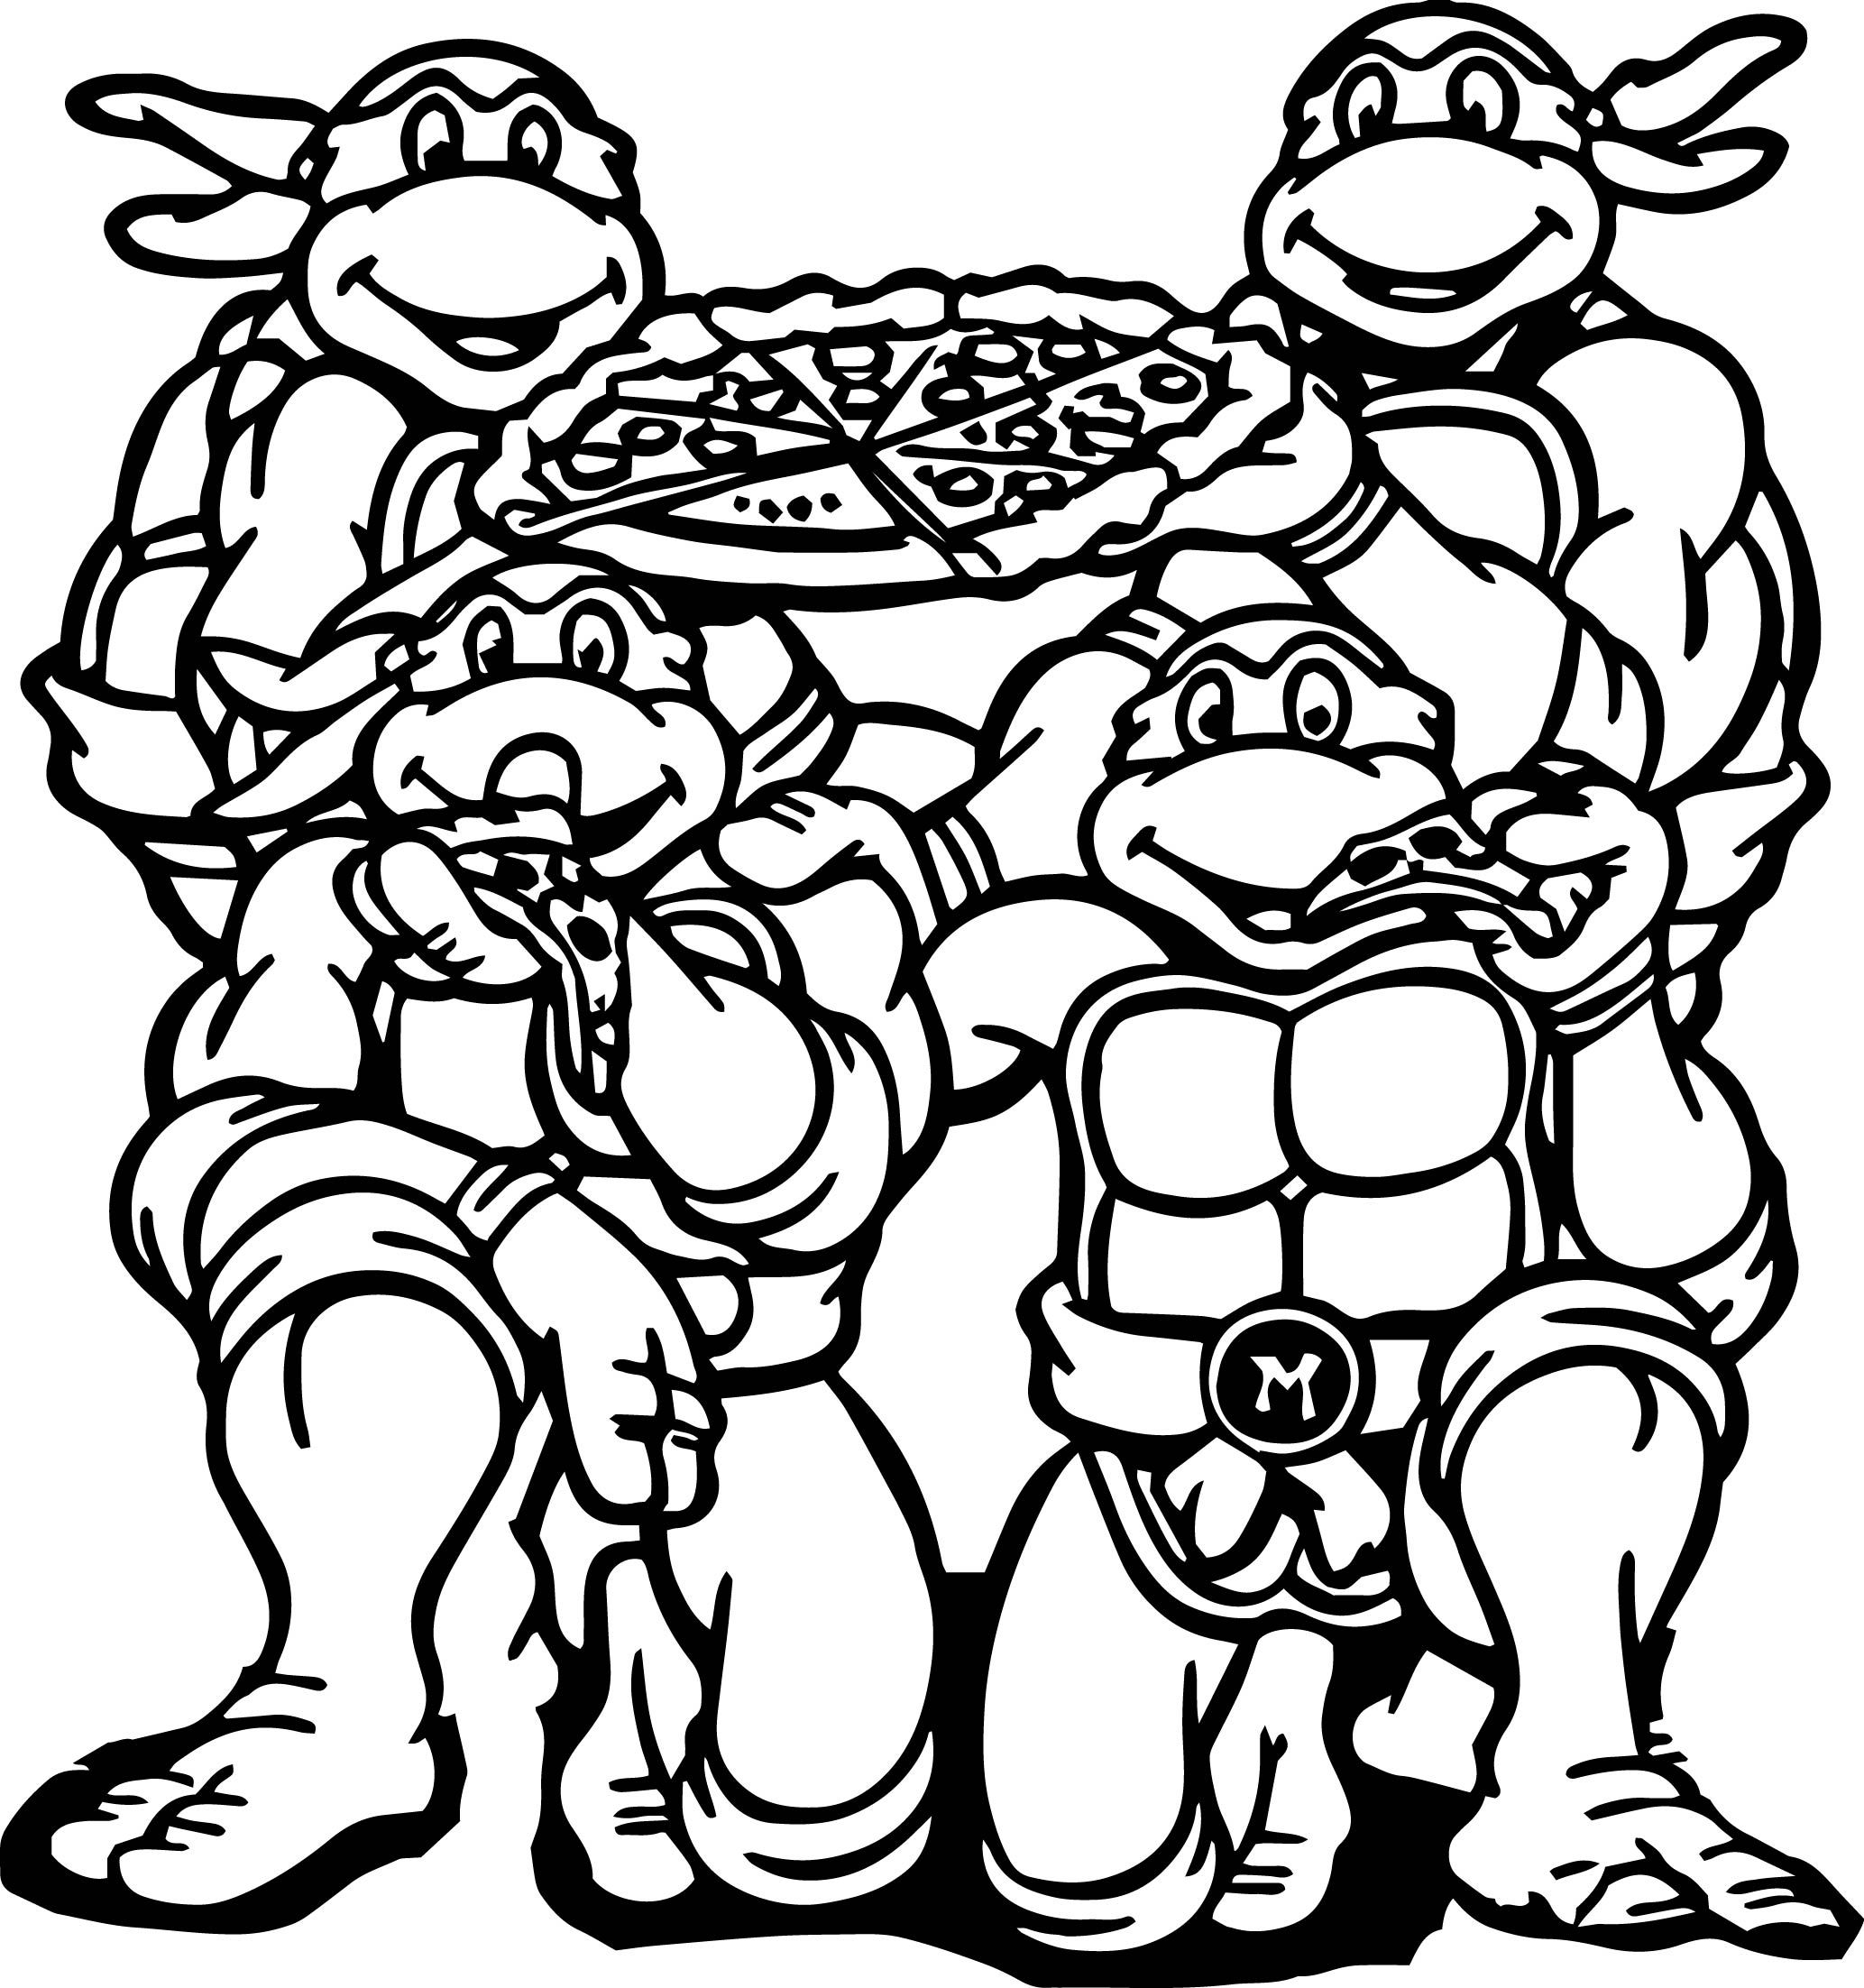 ninja turtles michelangelo. ninja turtle eat pizza coloring page ...